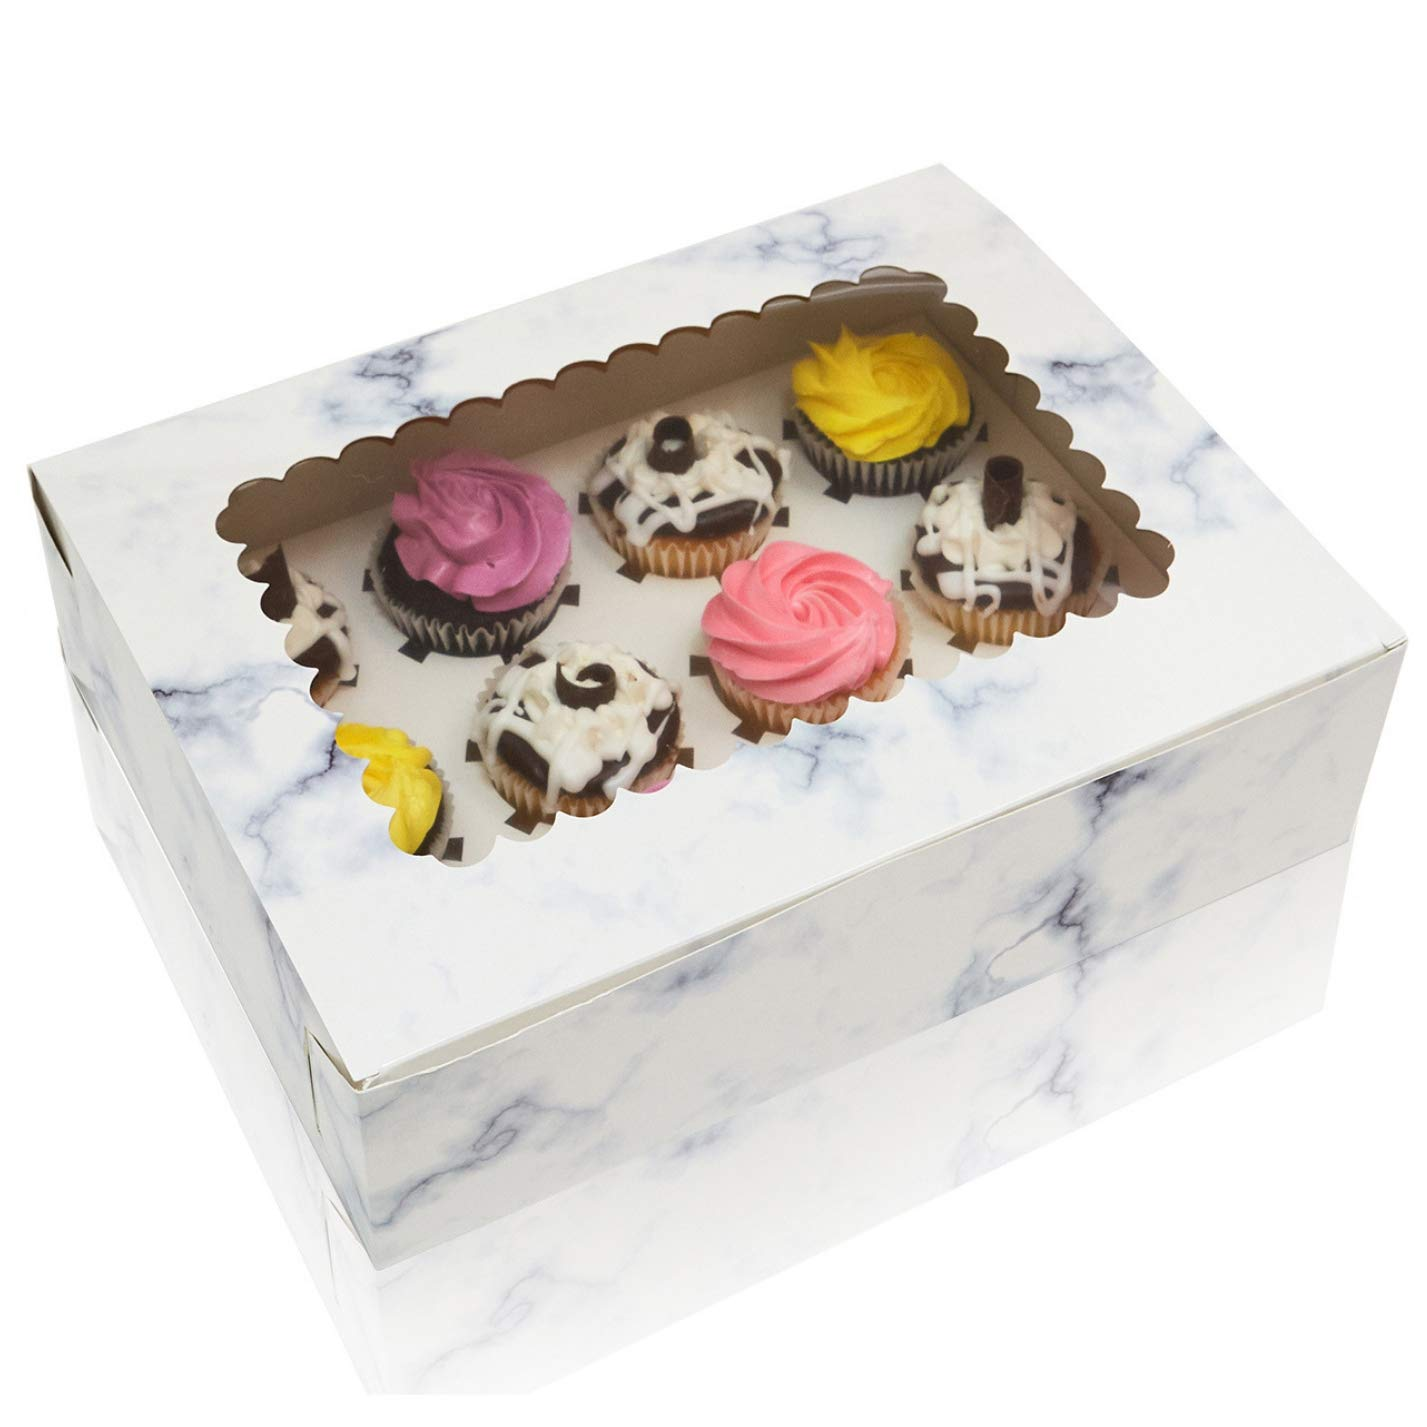 Cupcake Boxes With Window Display & Cup Cake Inserts For Cupcakes, Glossy Marble Design, Thick Sturdy Cupcake Box, Cupcake Box 12 pack For Birthdays, Weddings & Holidays